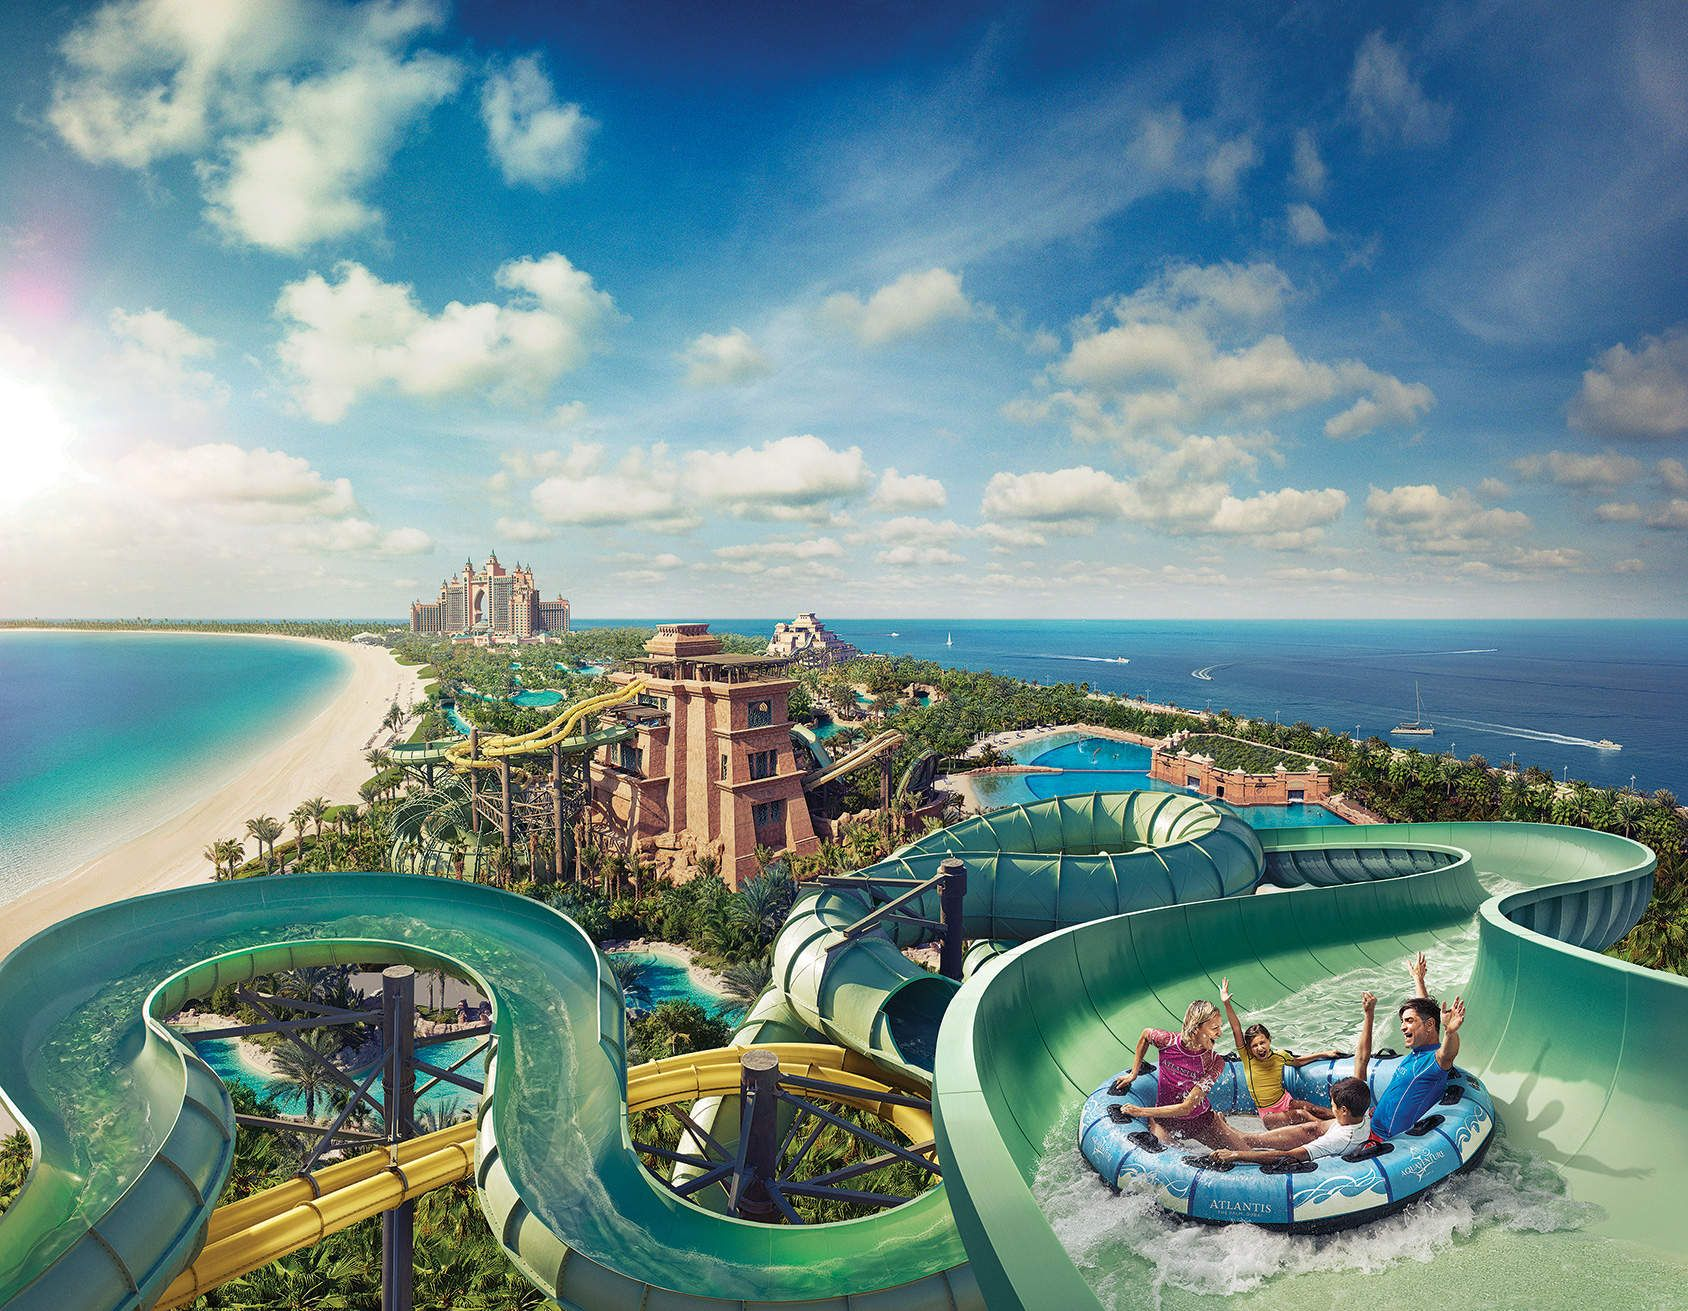 aquaventure waterpark